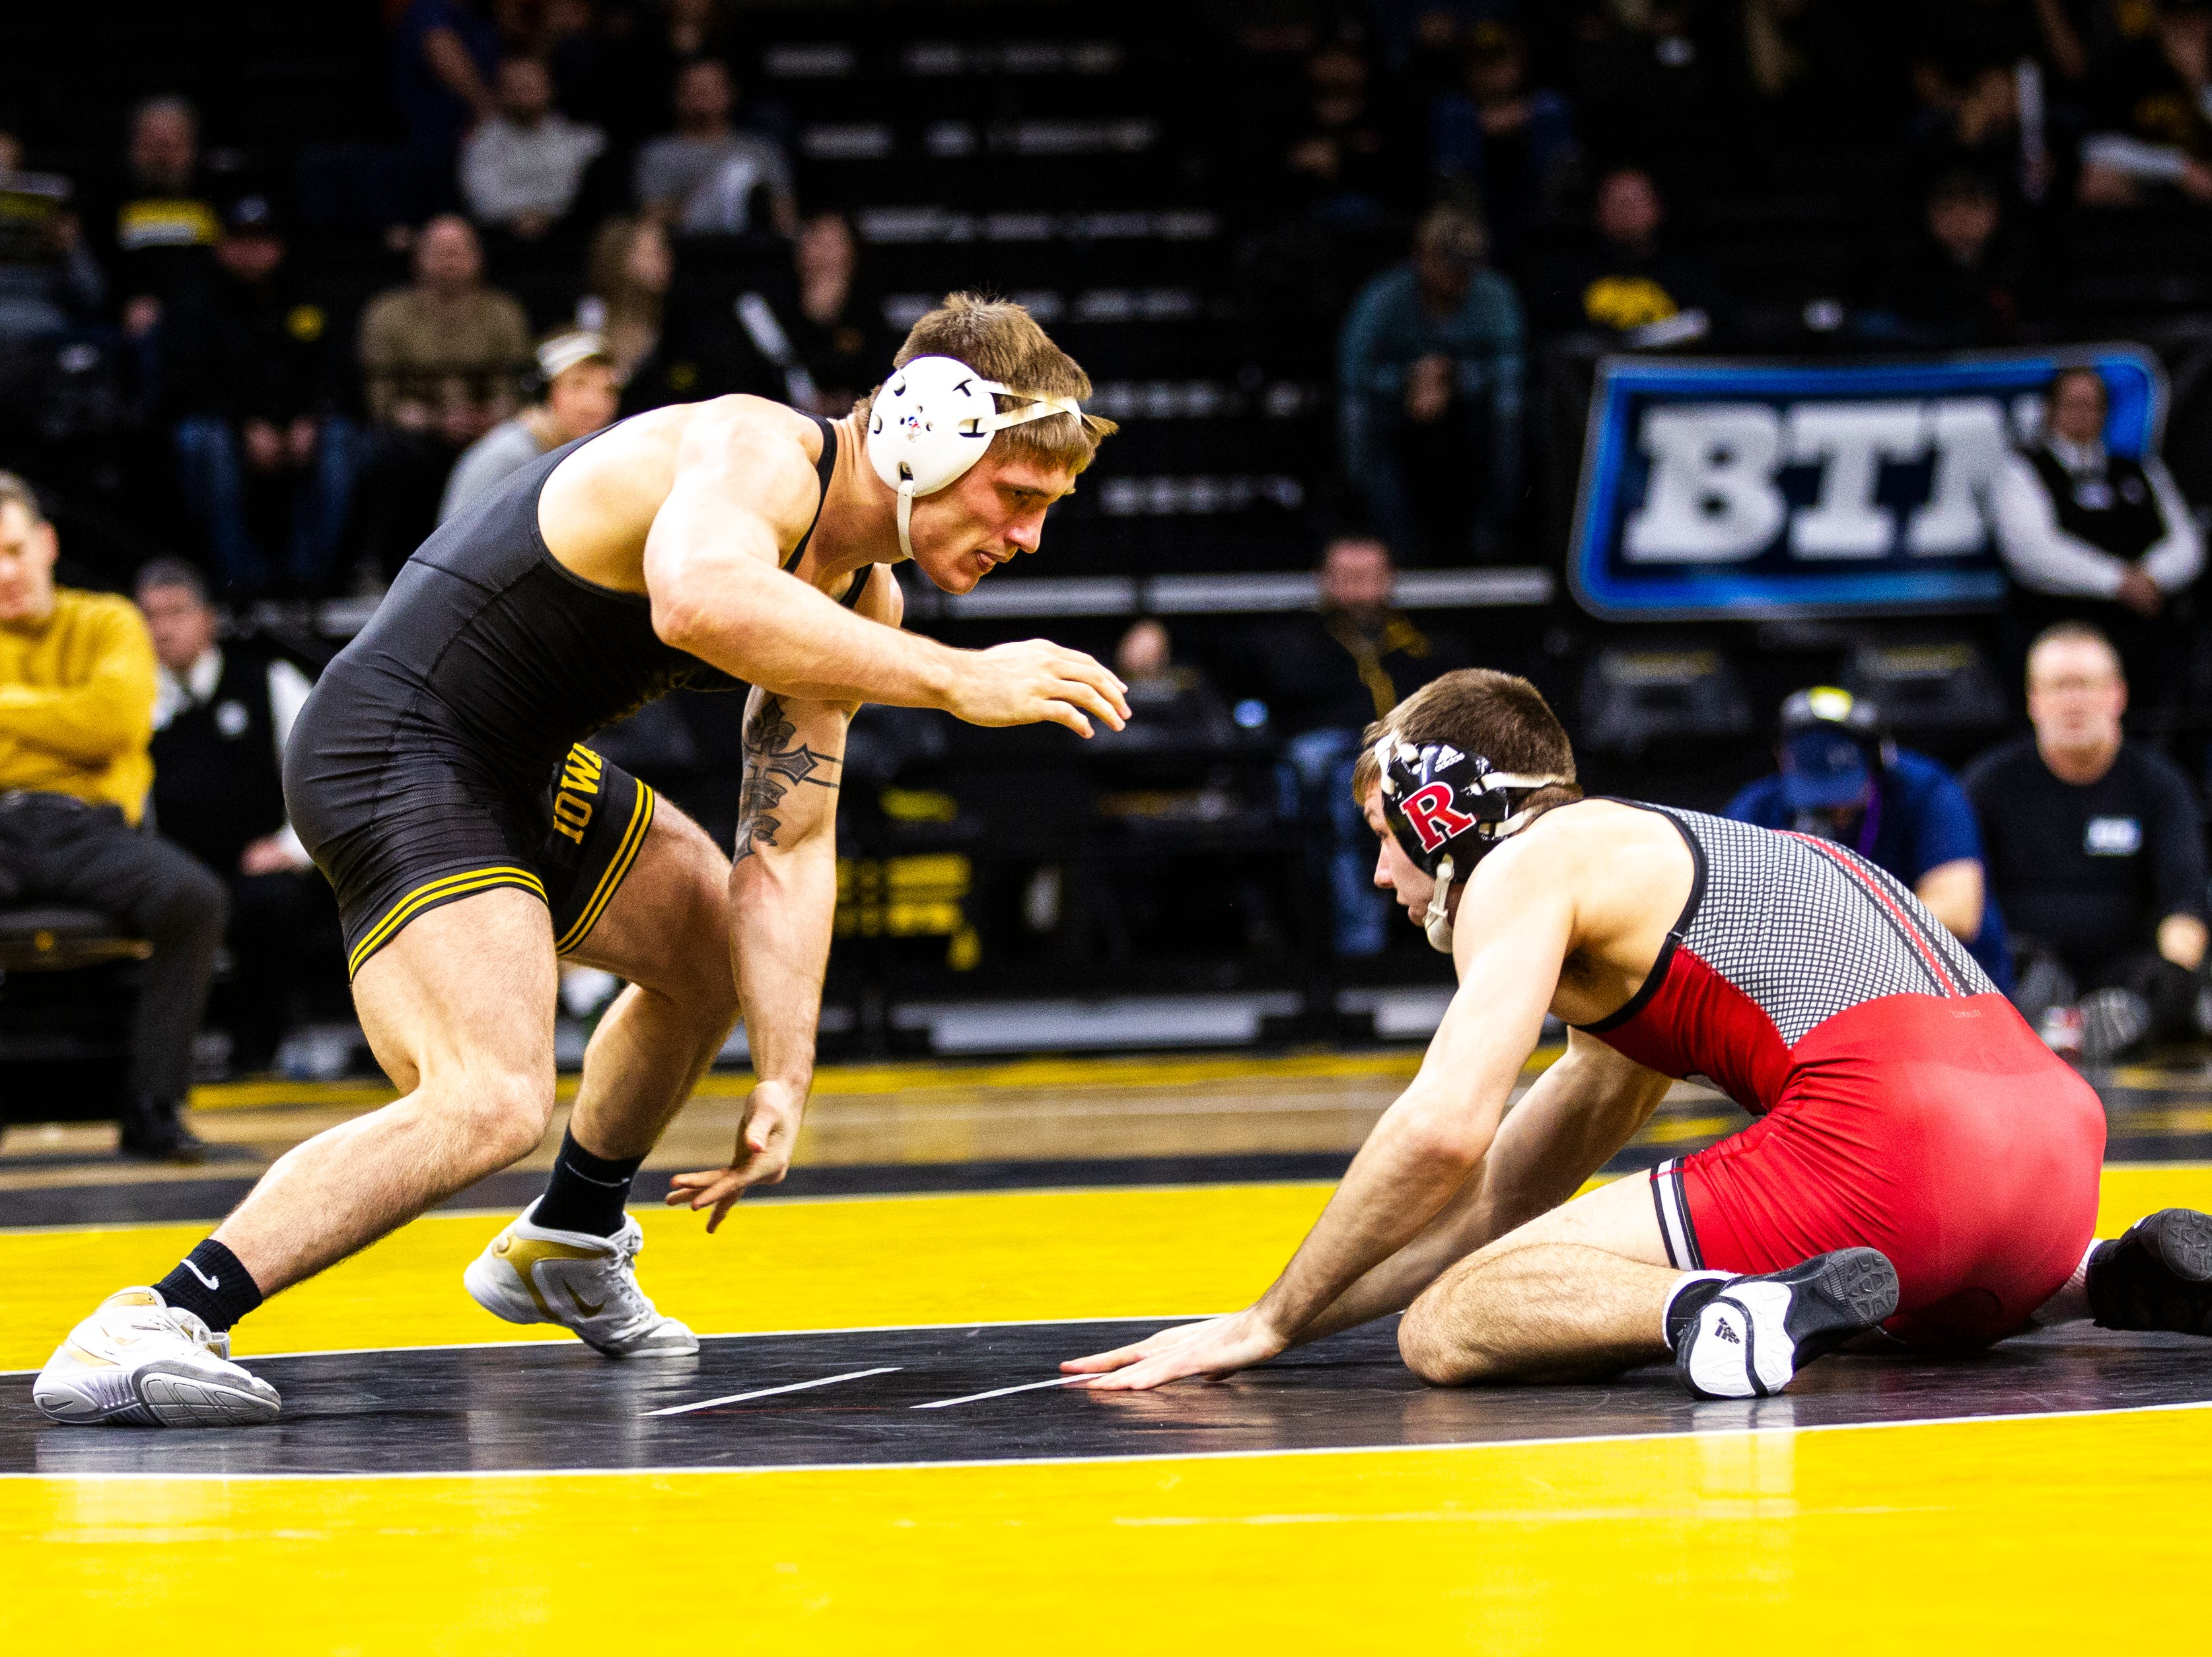 Iowa's Cash Wilcke, left, wrestles Rutgers' Willie Scott at 184 during a NCAA Big Ten Conference wrestling dual on Friday, Jan. 18, 2019, at Carver-Hawkeye Arena in Iowa City, Iowa.